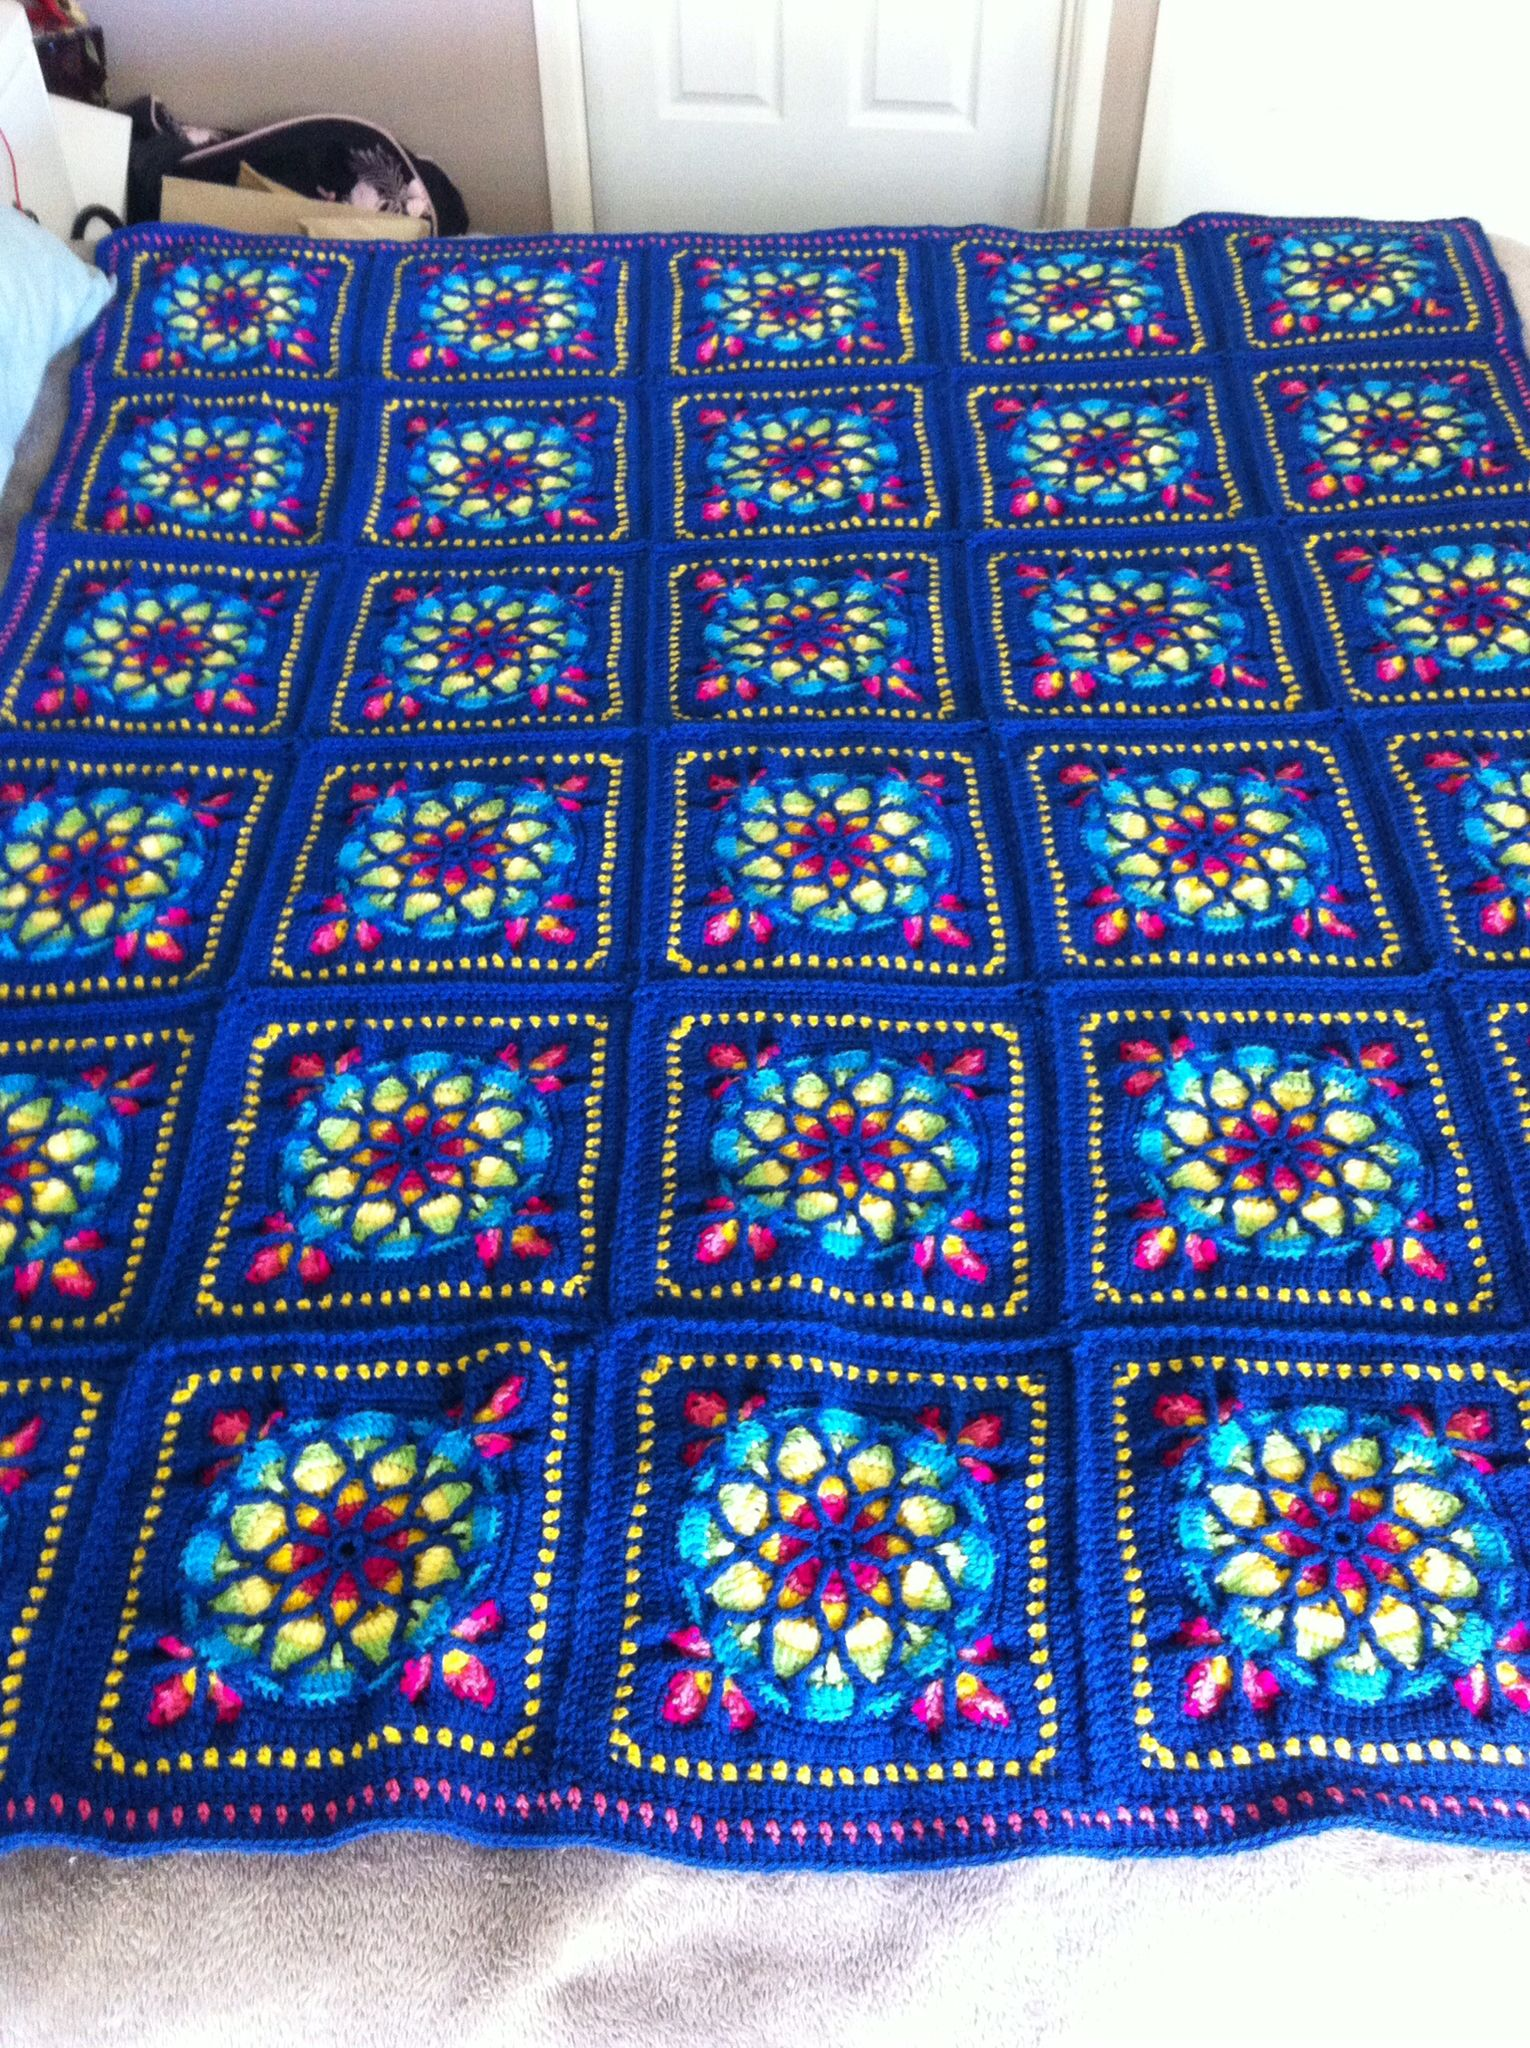 Stained Glass Window Afghan pattern by Melody MacDuffee | Pinterest ...